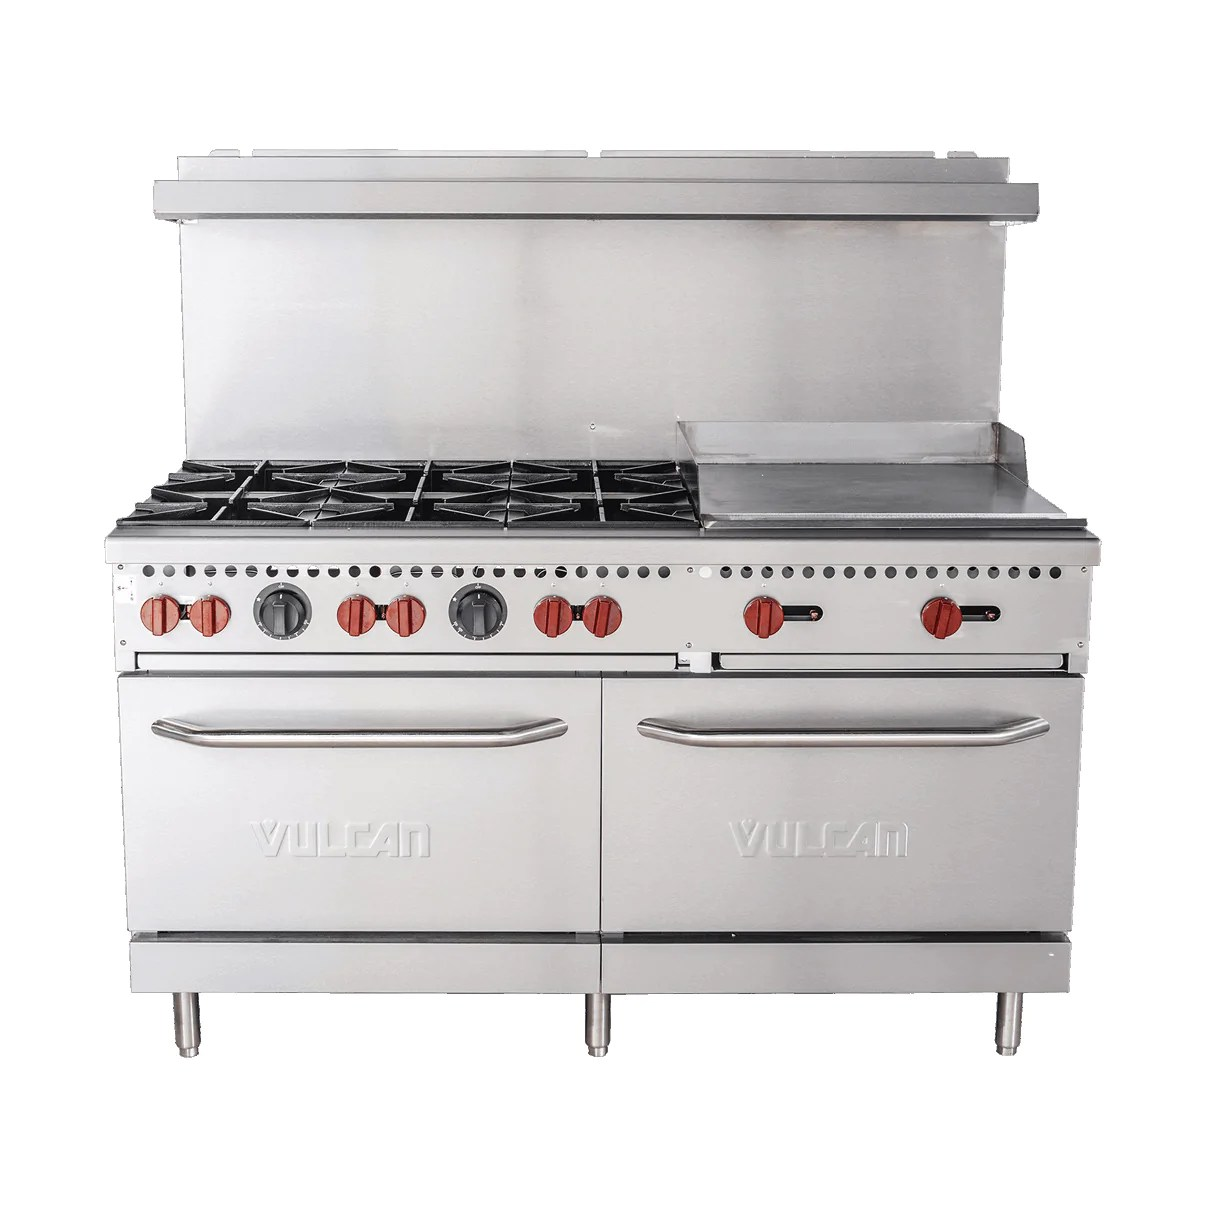 vulcan kitchen laminate table sx60 6b24g natural gas 60 sx series value range with griddle nella online